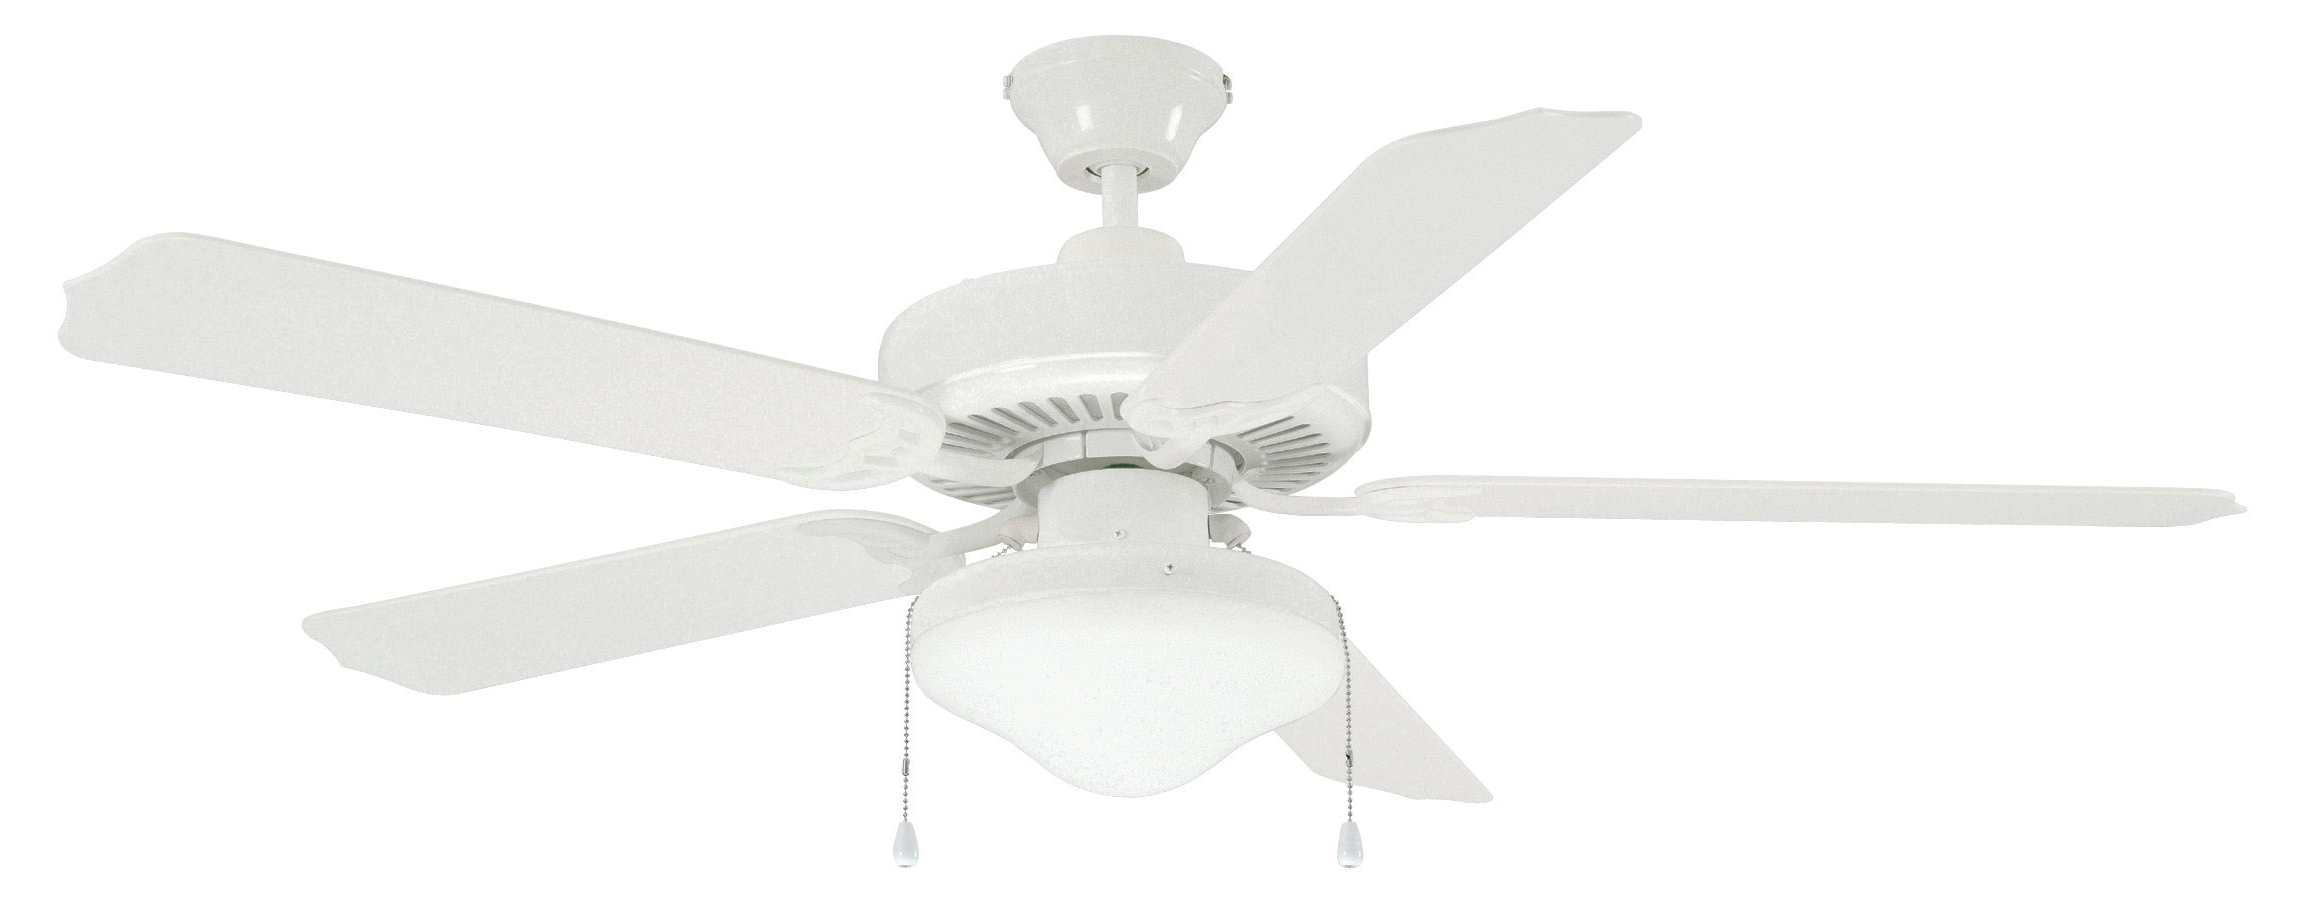 Ceiling Fans White Ceiling Fan With Light Cruise Outdoor Wet Rated Throughout 2018 White Outdoor Ceiling Fans (View 15 of 20)